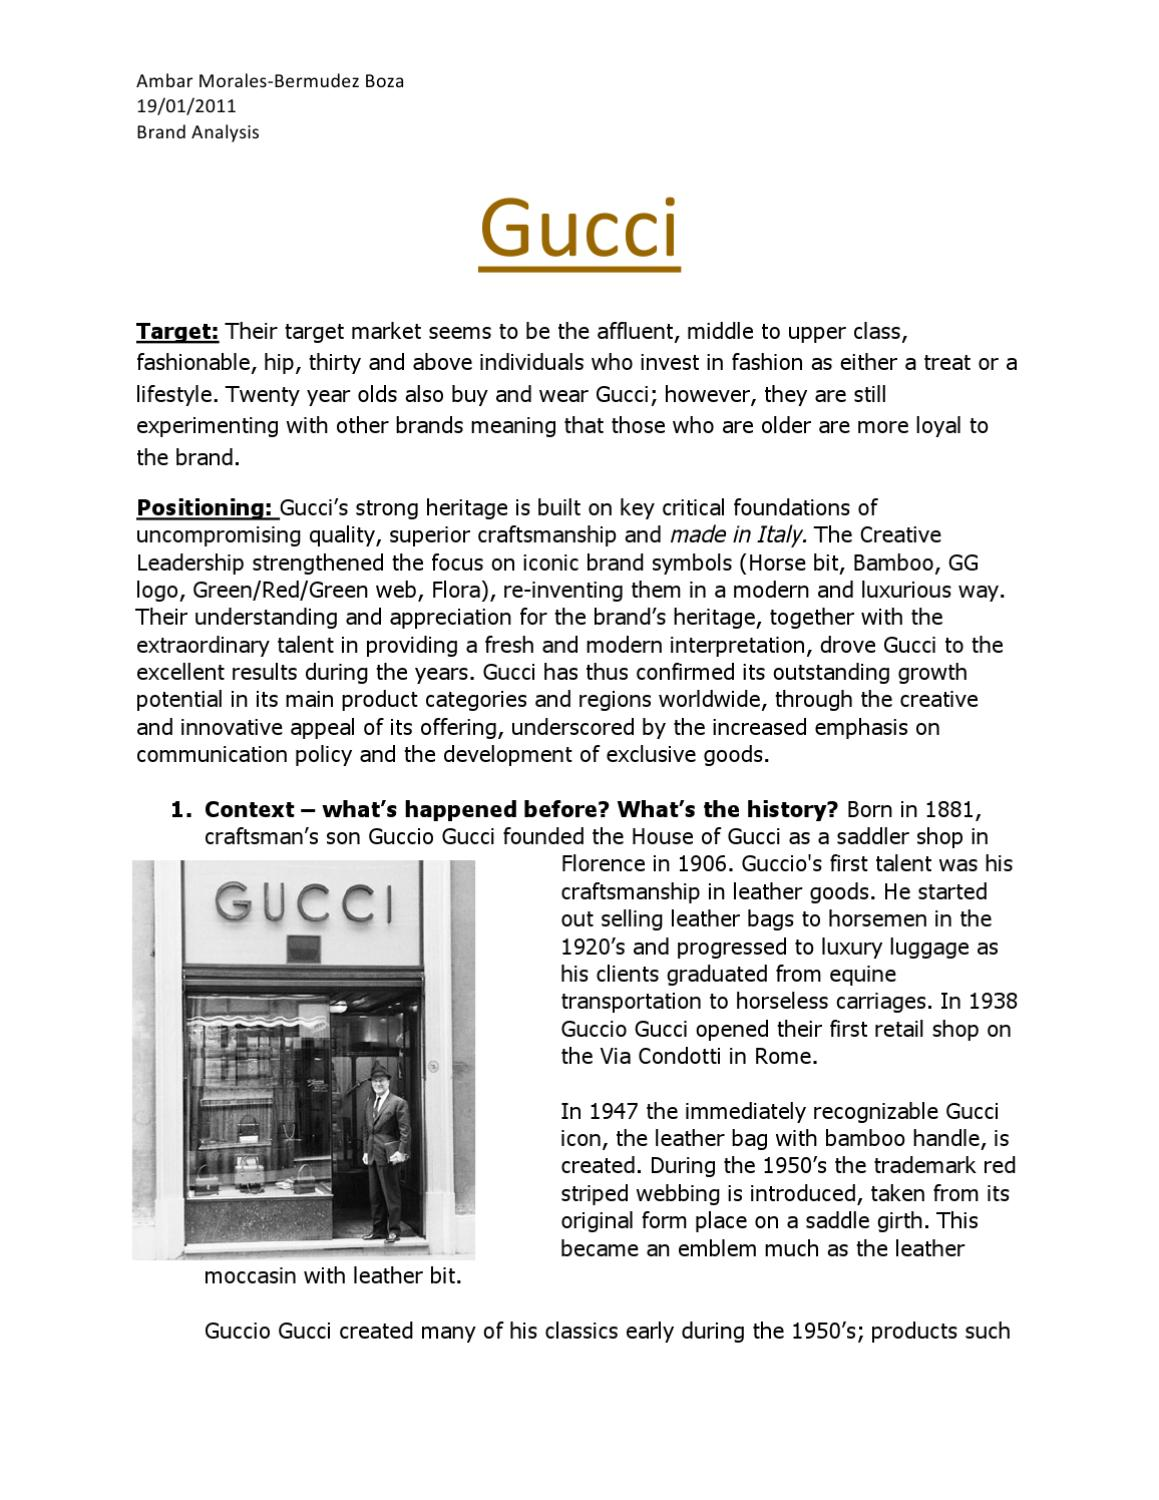 gucci target market Global strategy local strategy competitor analysis brand positioning cbbe rich history and culture not only is louis vuitton one of the most well-known fashion boutiques in the world with one of the richest history, it is also one of, if not the most legendary of fashion houses in the world.